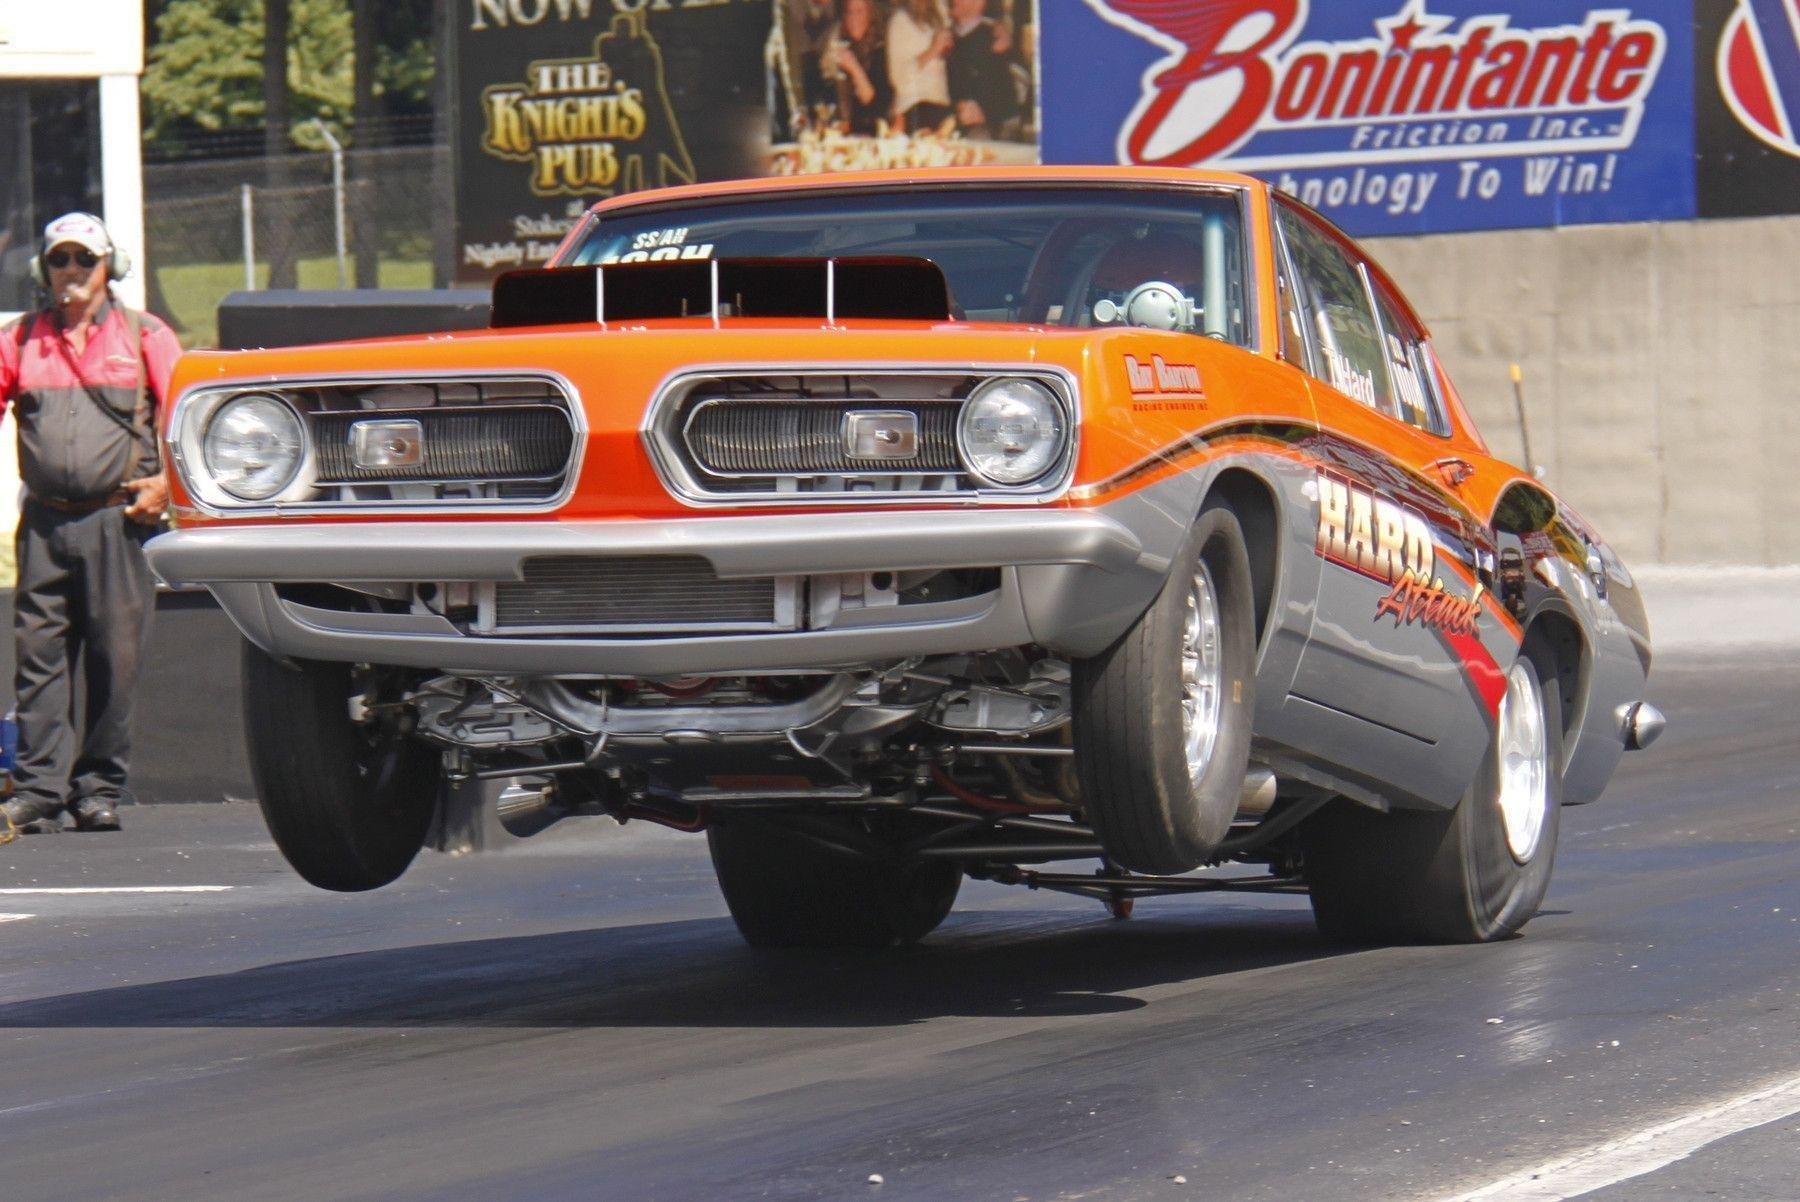 Hot rod rods drag race racing plymouth barracuda cuda r_JPG ...